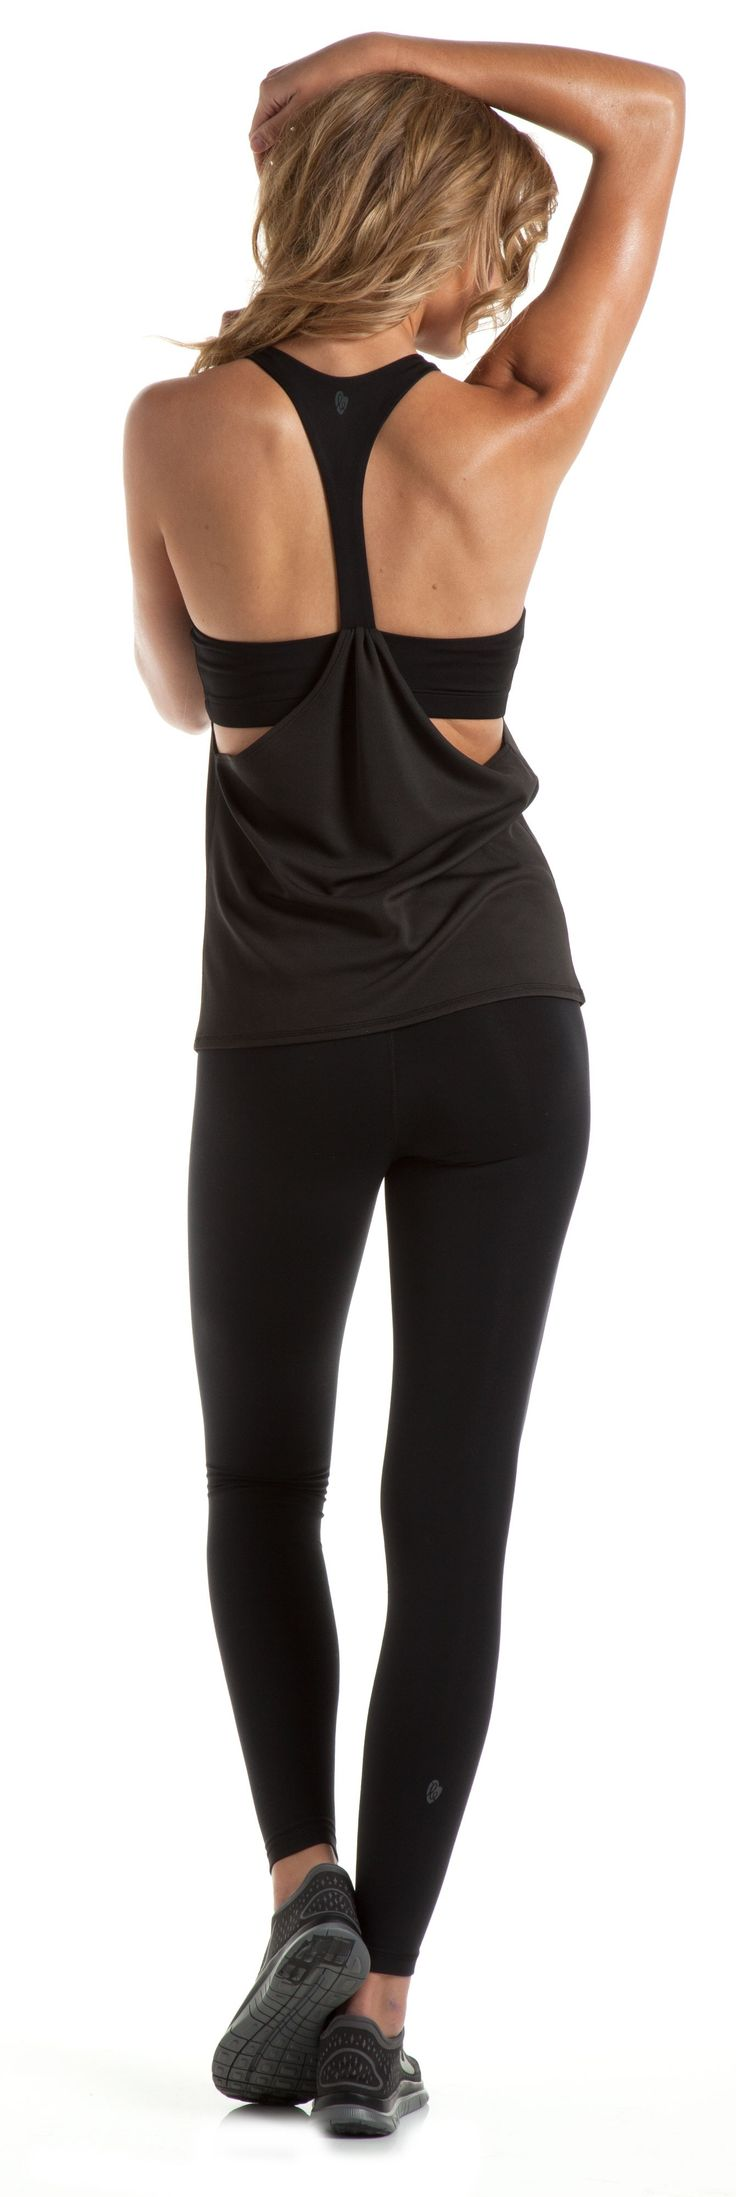 I love tight, no flare yoga pants with a draping shirt. Perfect outfit!